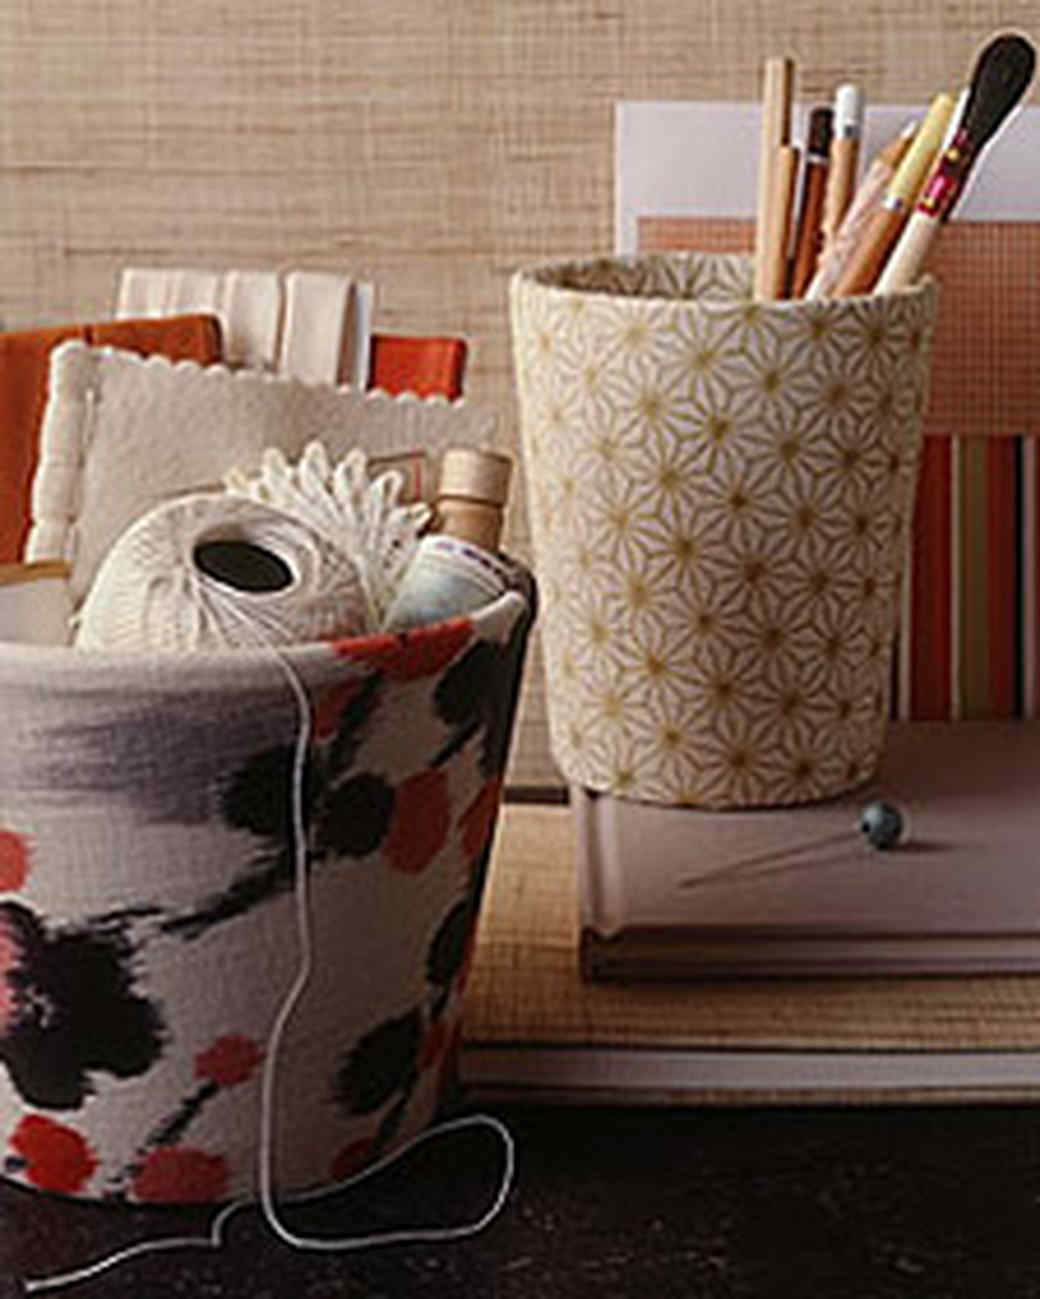 Fabric-Covered Flowerpots